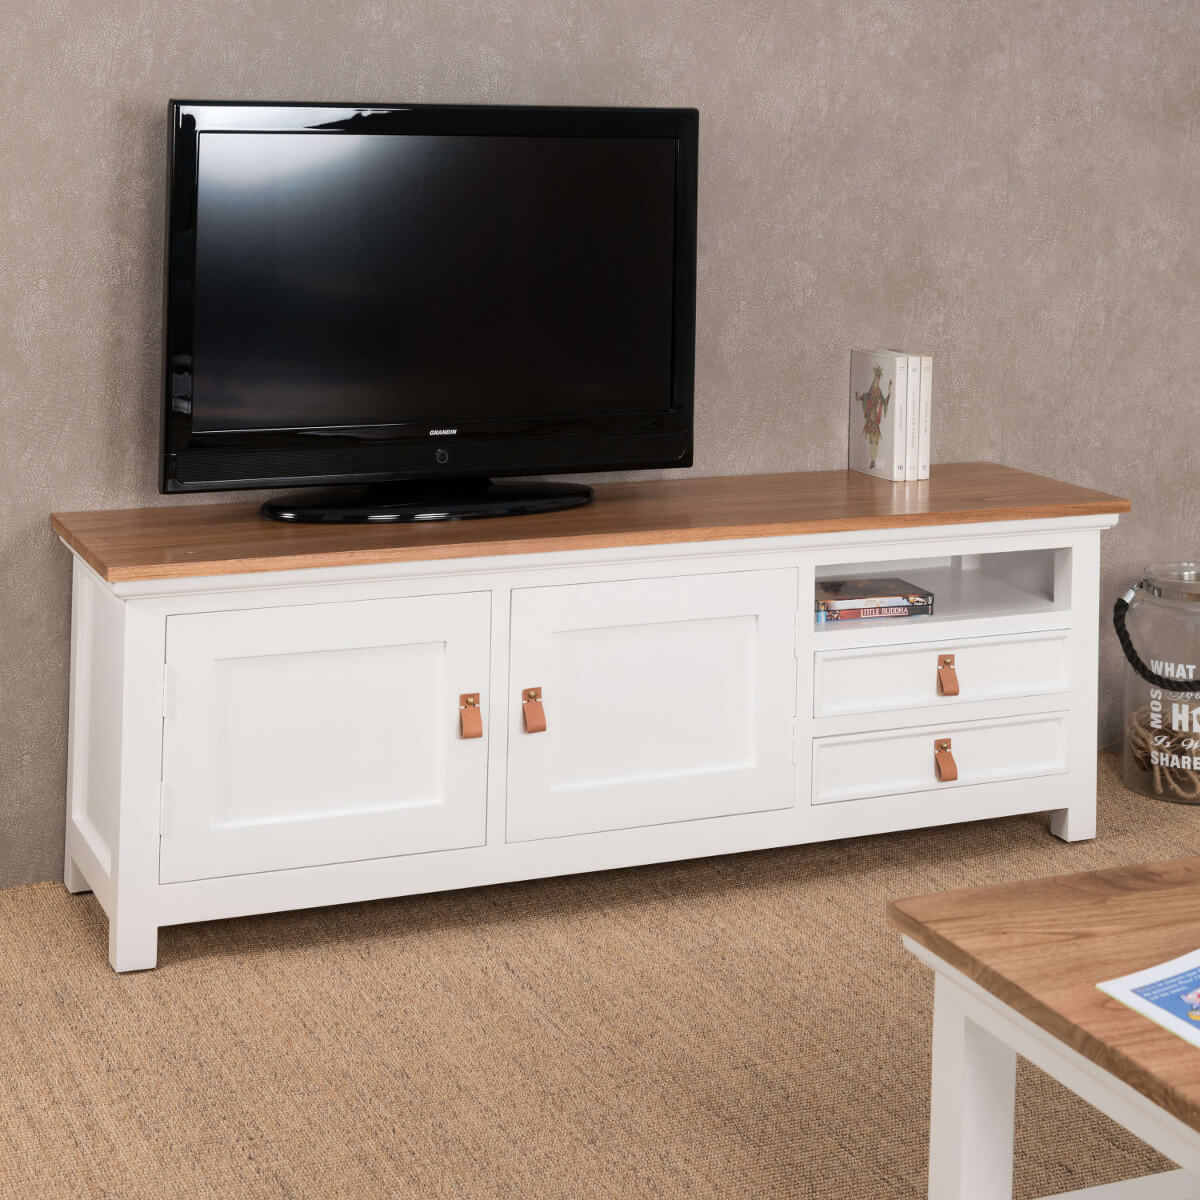 Meuble Tv Salon Bois Massif Teck Et Pin Chic Rectangle